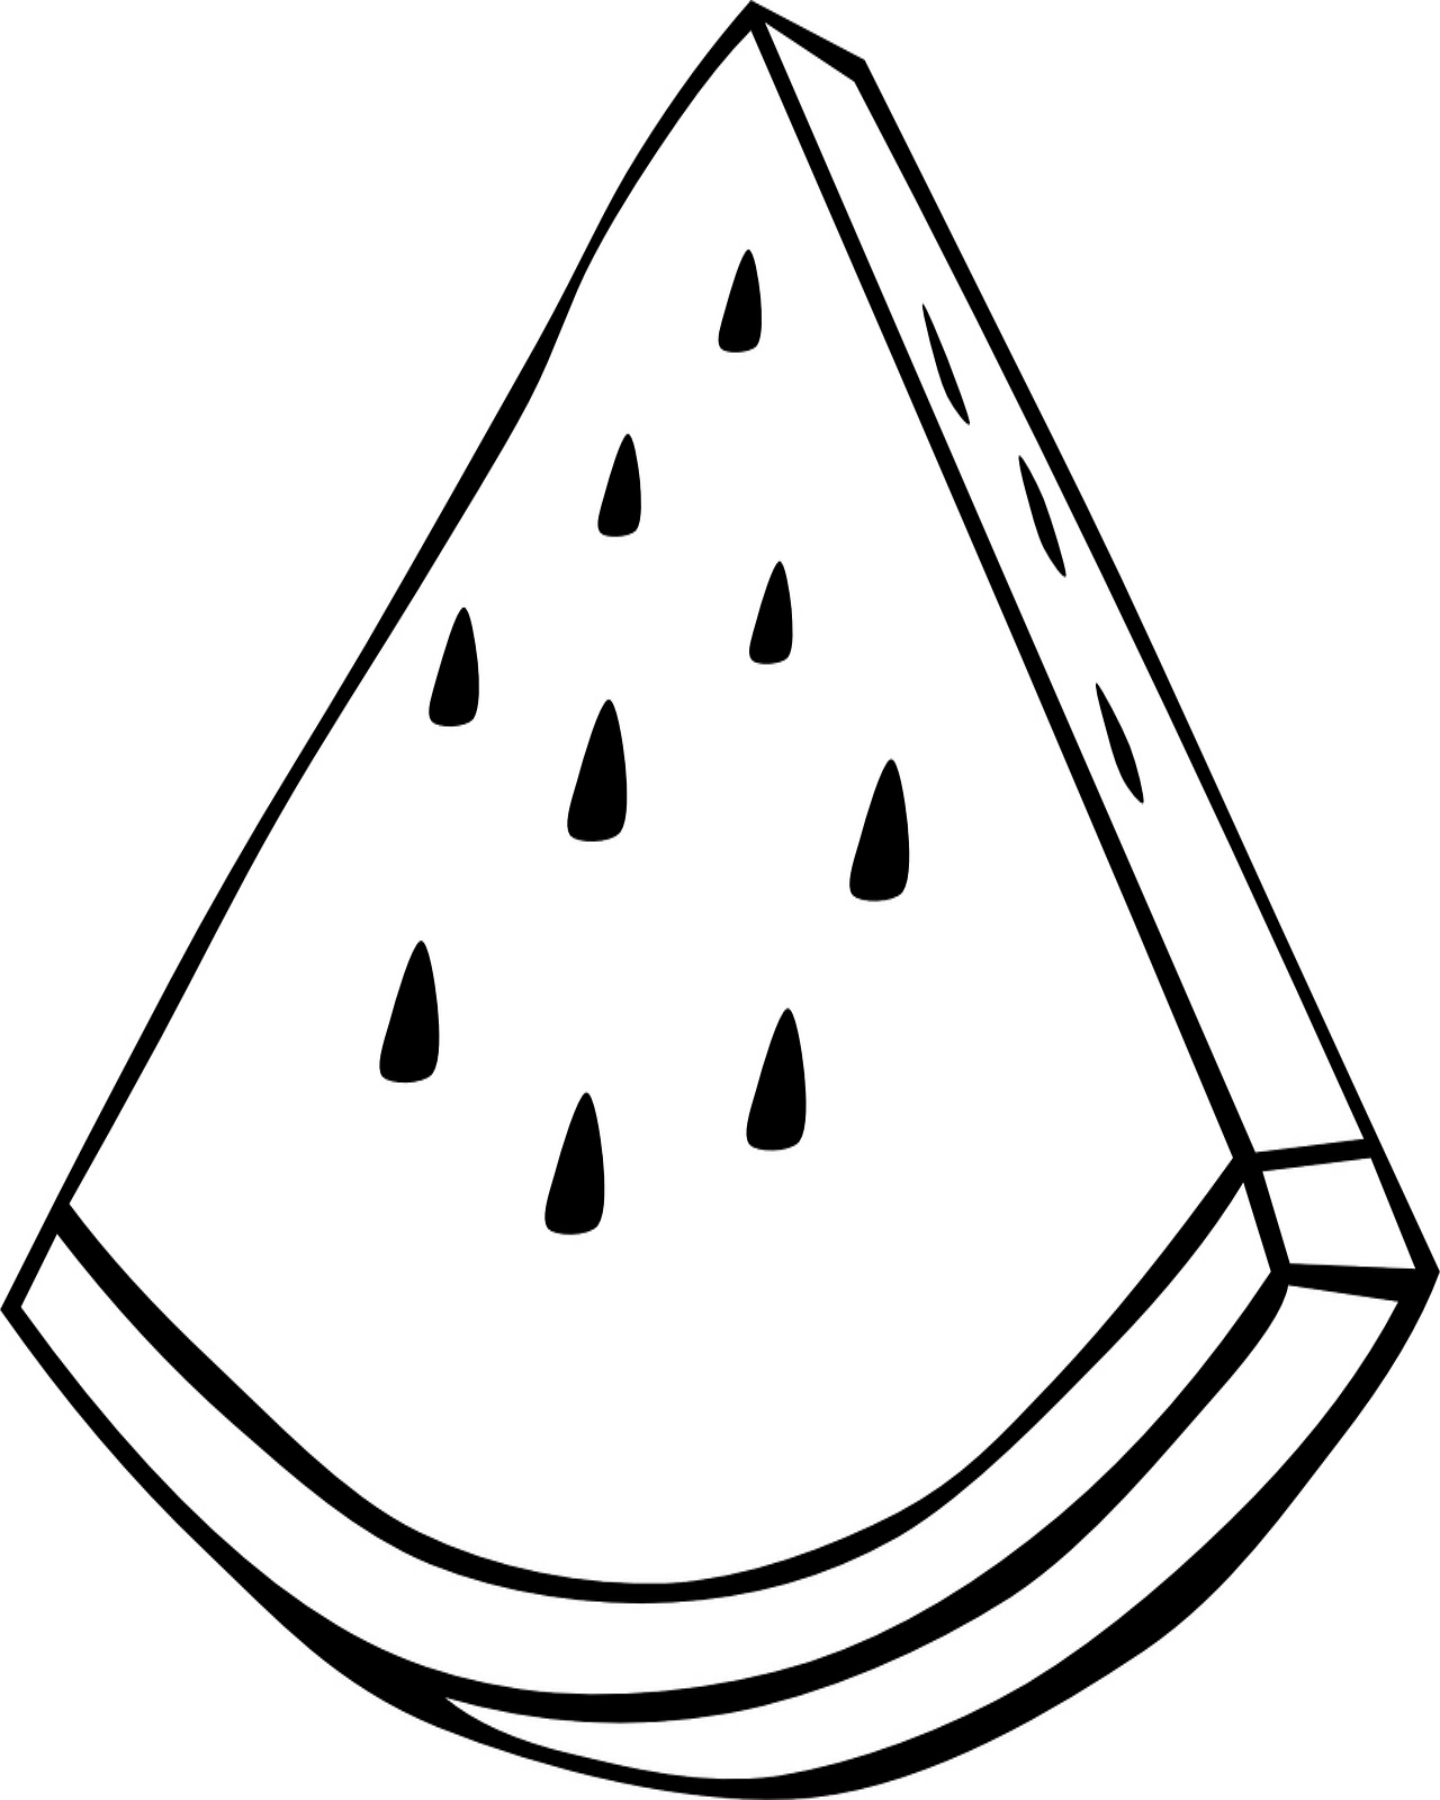 coloring pages watermelon watermelon coloring page at getcoloringscom free coloring watermelon pages